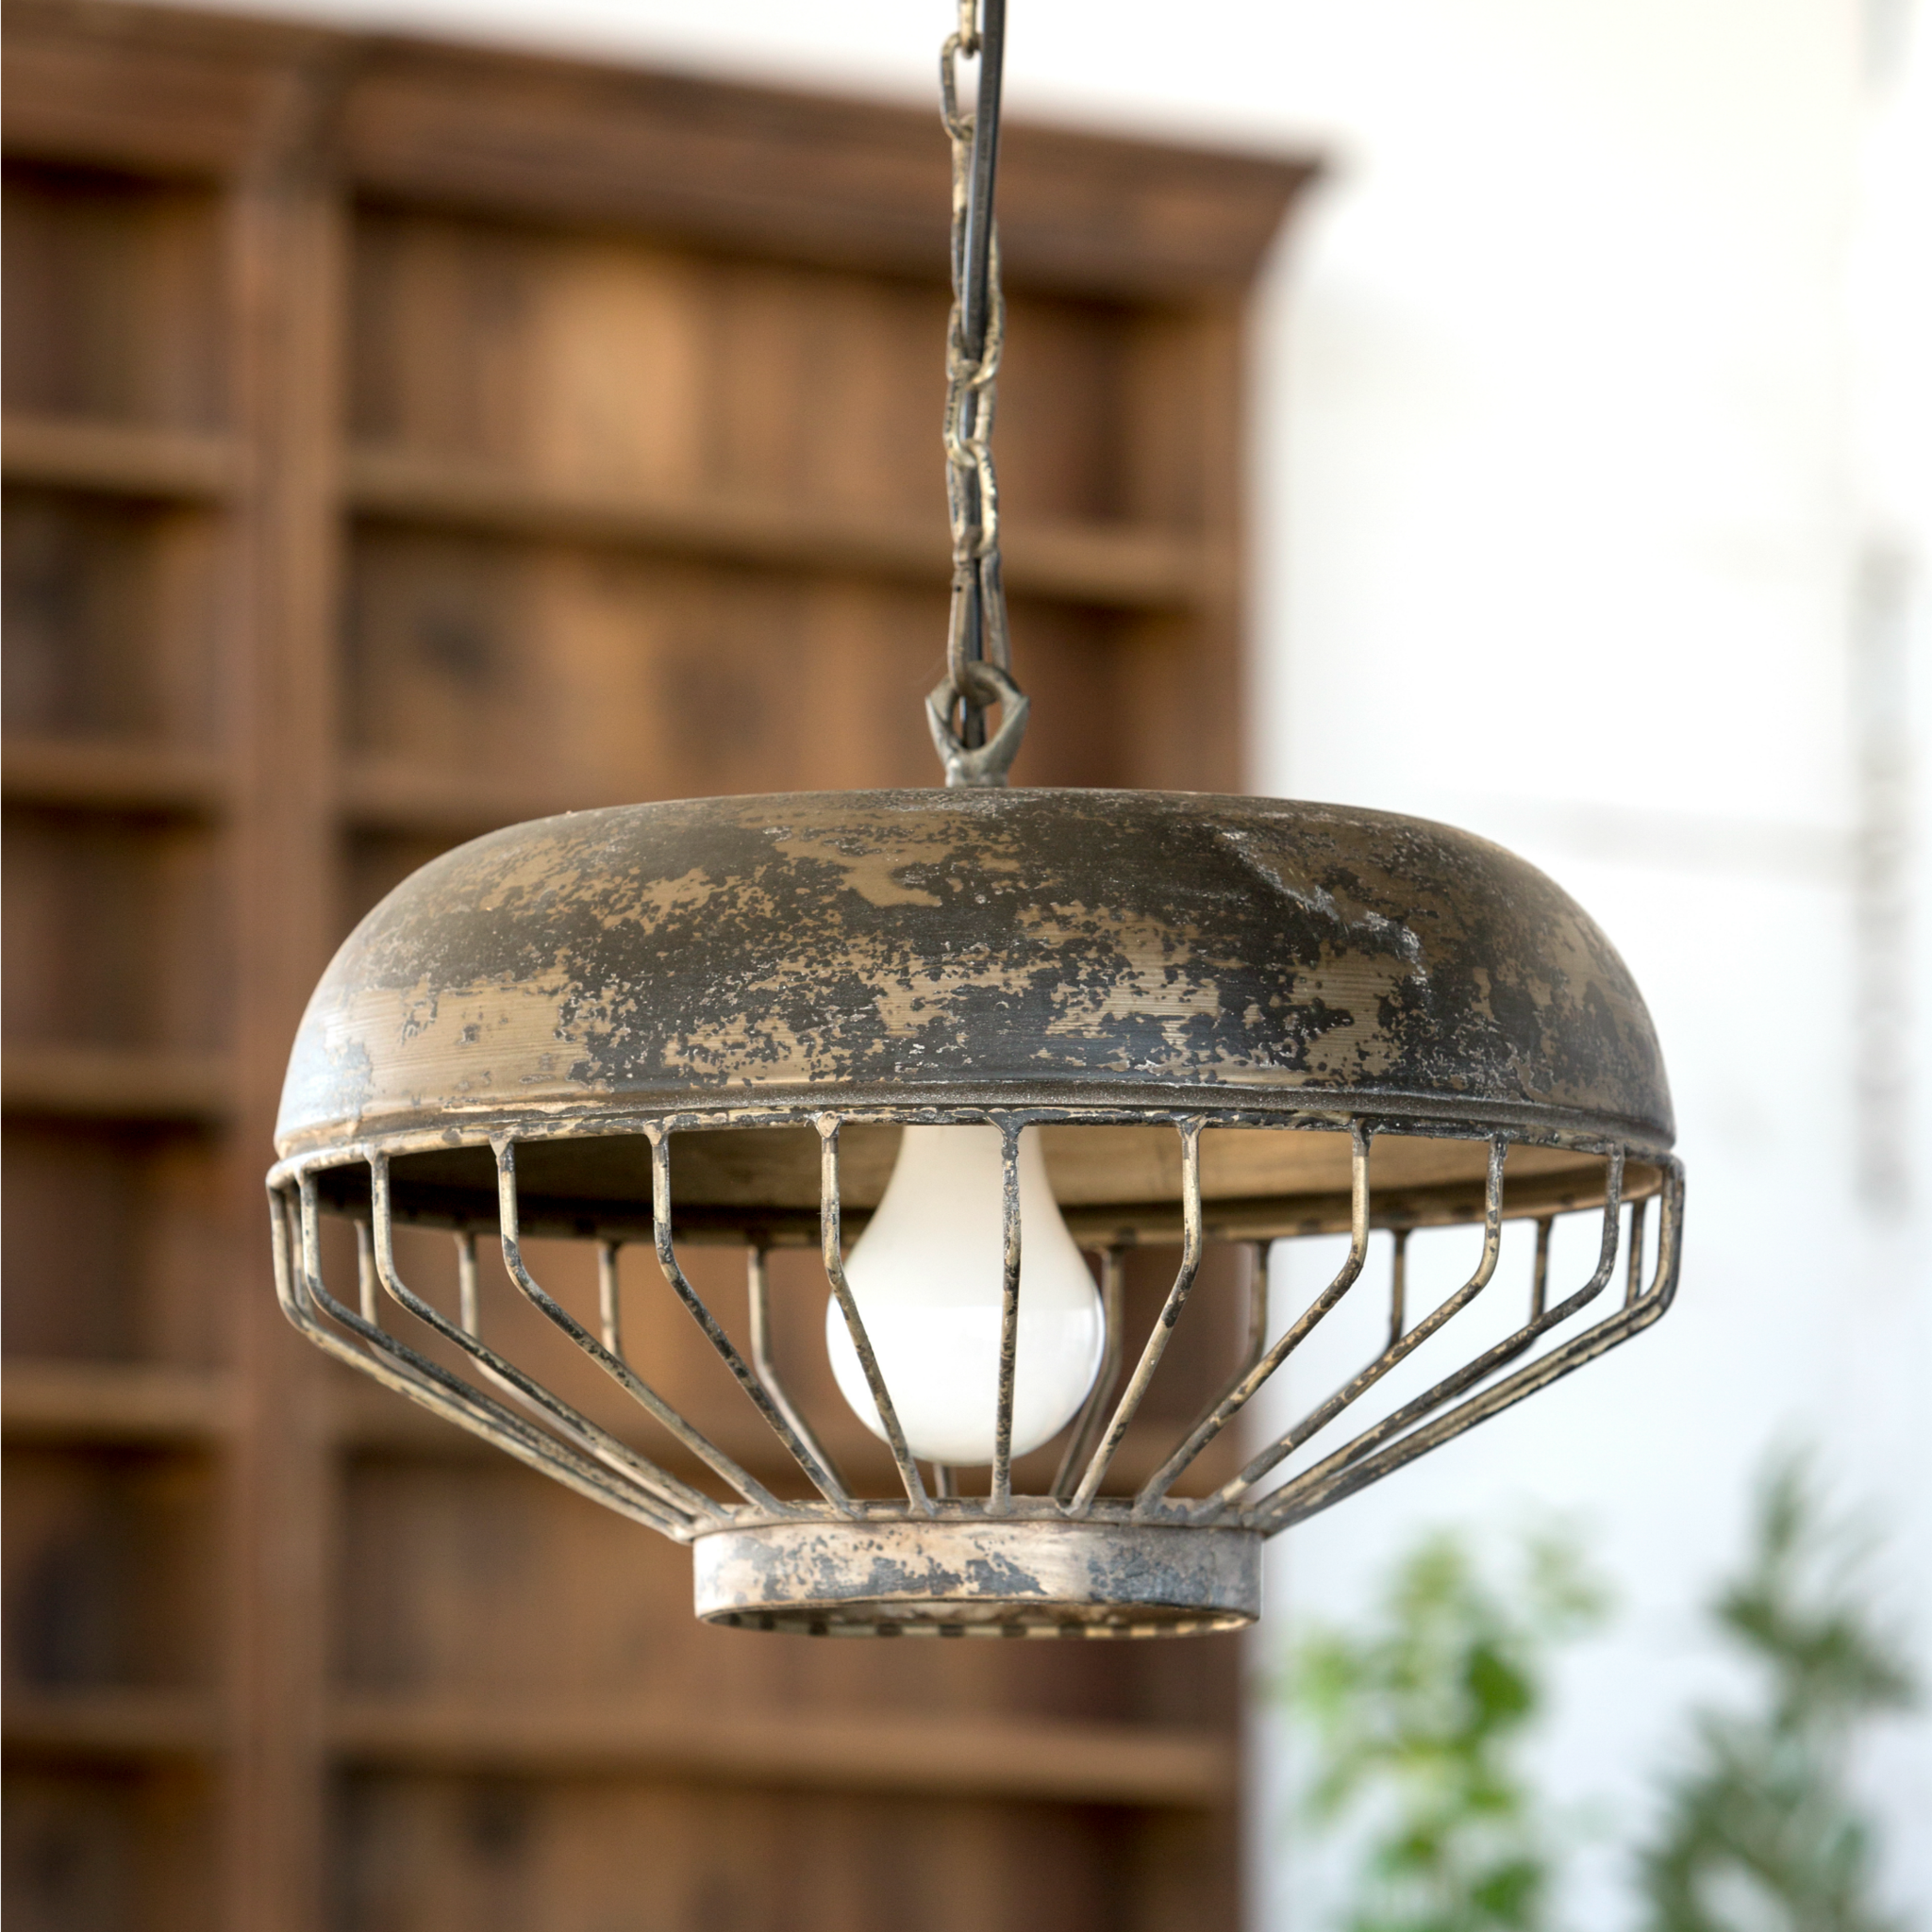 Old chicken feeder pendant light chicken feeders pendant lighting